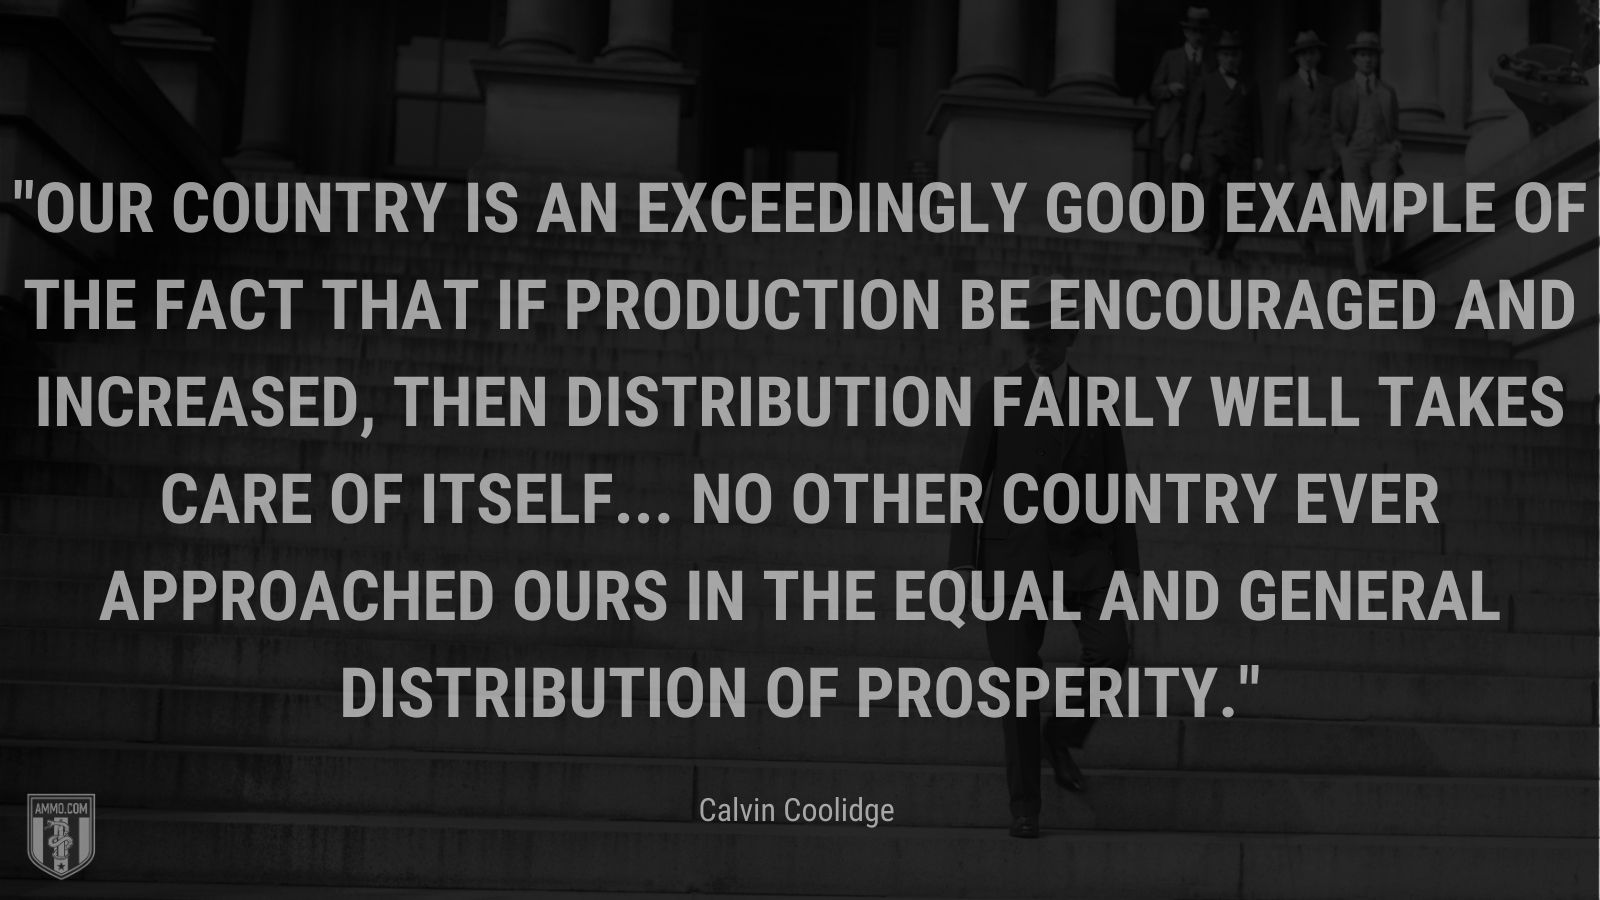 """""""Our country is an exceedingly good example of the fact that if production be encouraged and increased, then distribution fairly well takes care of itself... no other country ever approached ours in the equal and general distribution of prosperity."""" - Calvin Coolidge"""